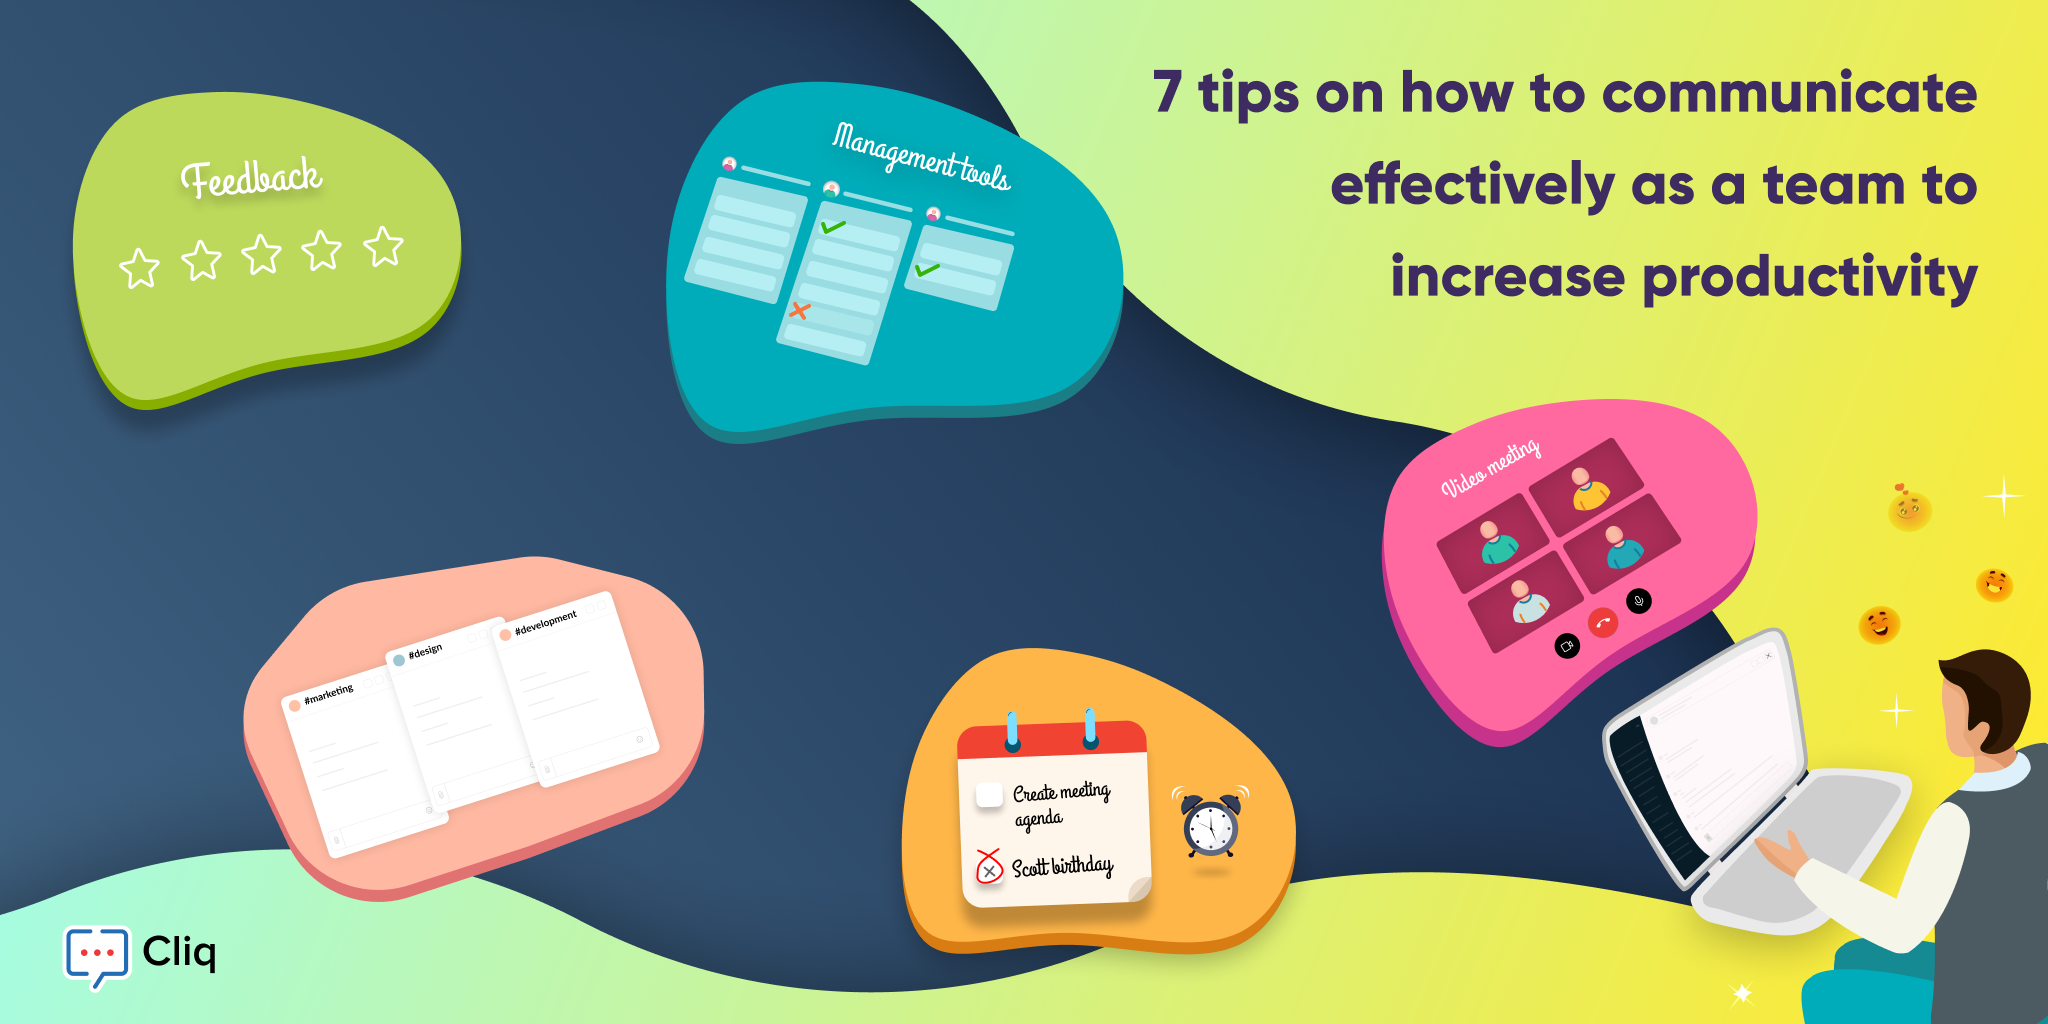 7 tips on how to communicate effectively as a team to increase productivity